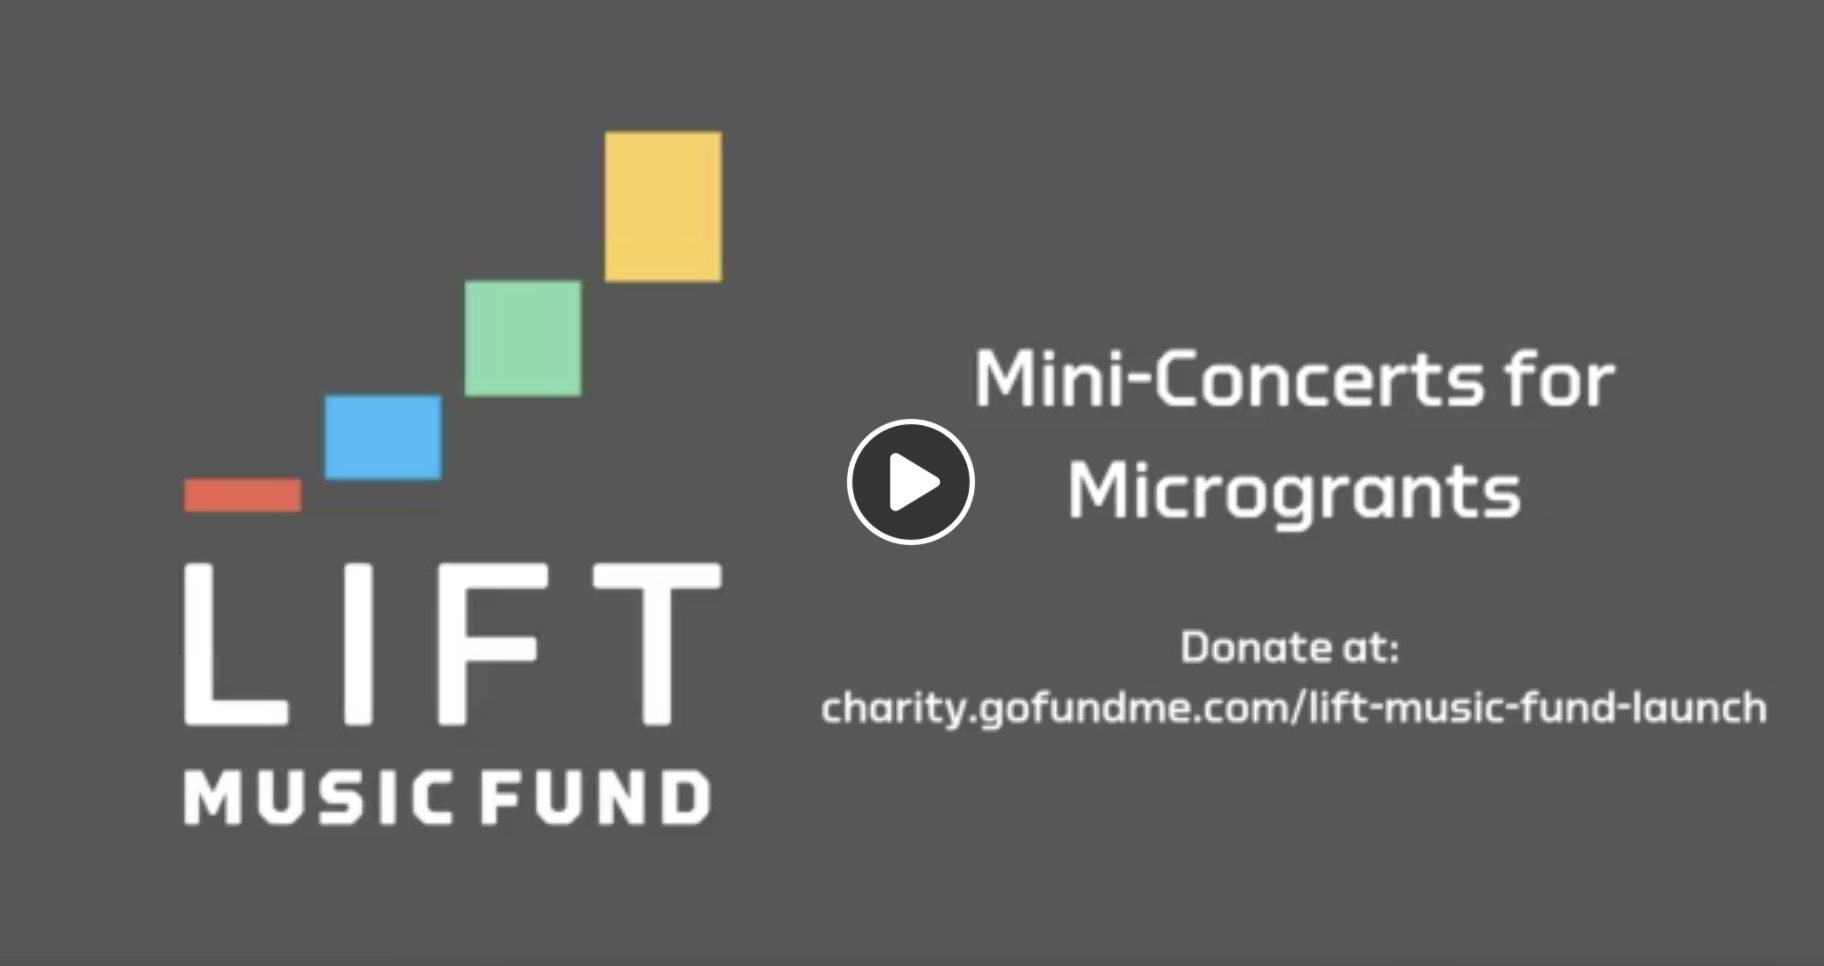 Lift Music Fund mini-concerts for microgrants